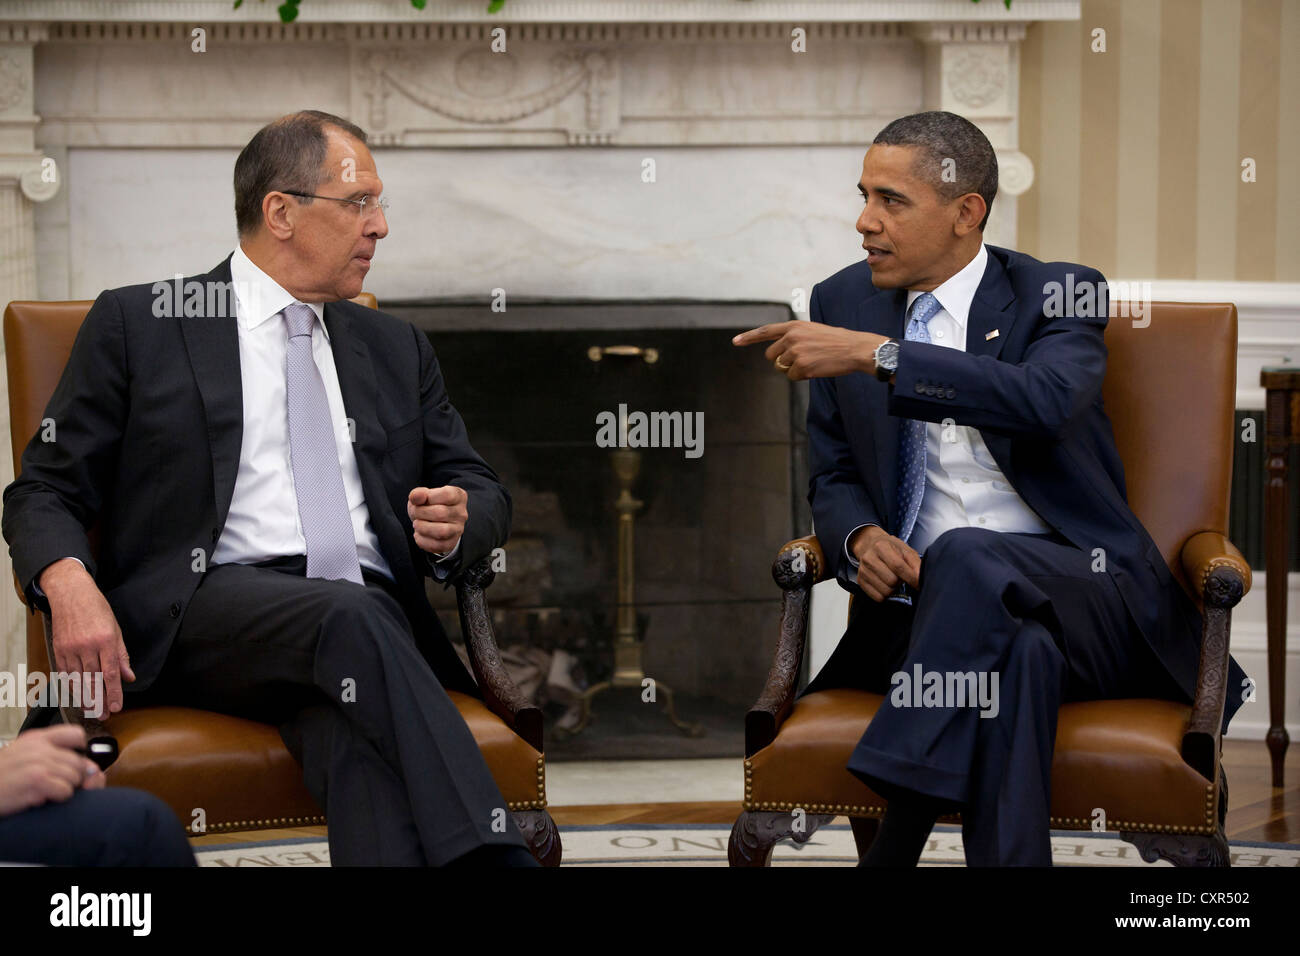 US President Barack Obama meets with Russian Foreign Minister Sergey Lavrov July 13, 2011 in the Oval Office of - Stock Image